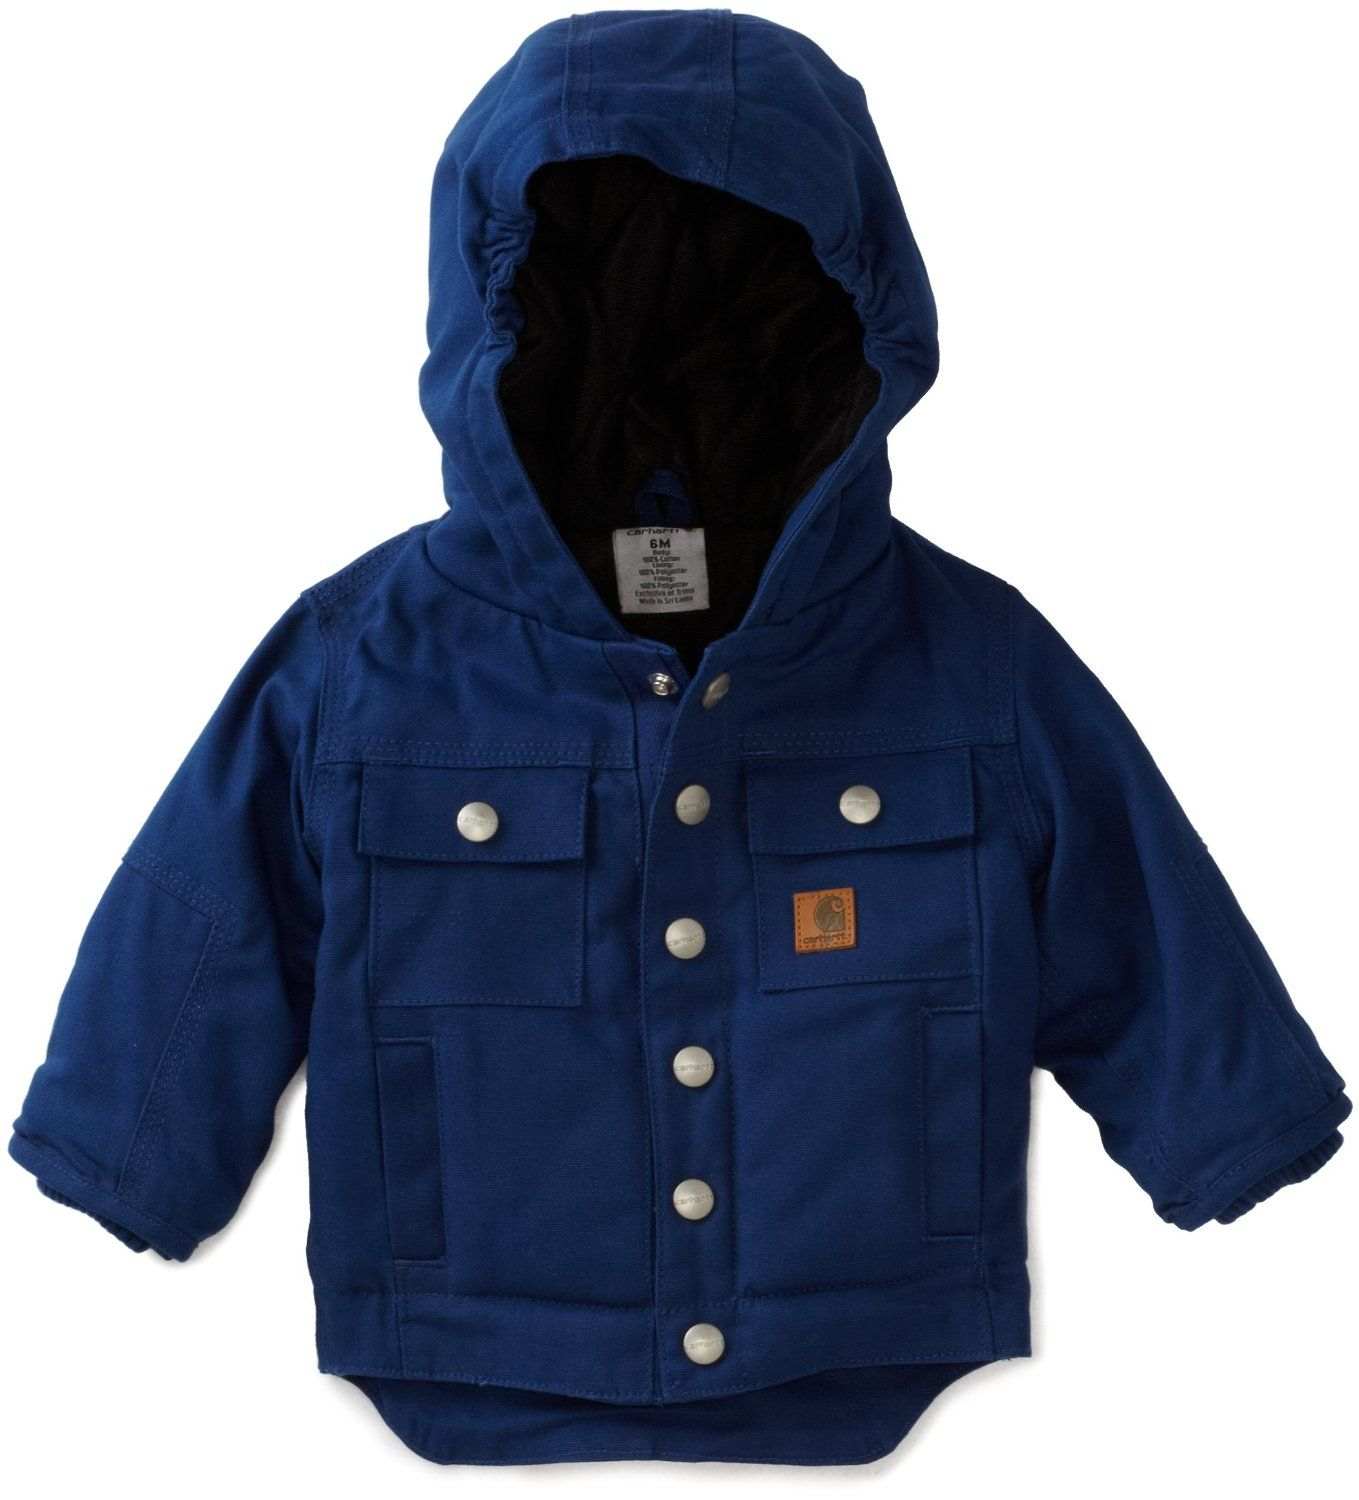 Amazon Com Carhartt Baby Boys Infant Rancher Quilted Flannel Lined Jacket Clothing Carhartt Baby Toddler Boy Outfits Baby Boy Outfits